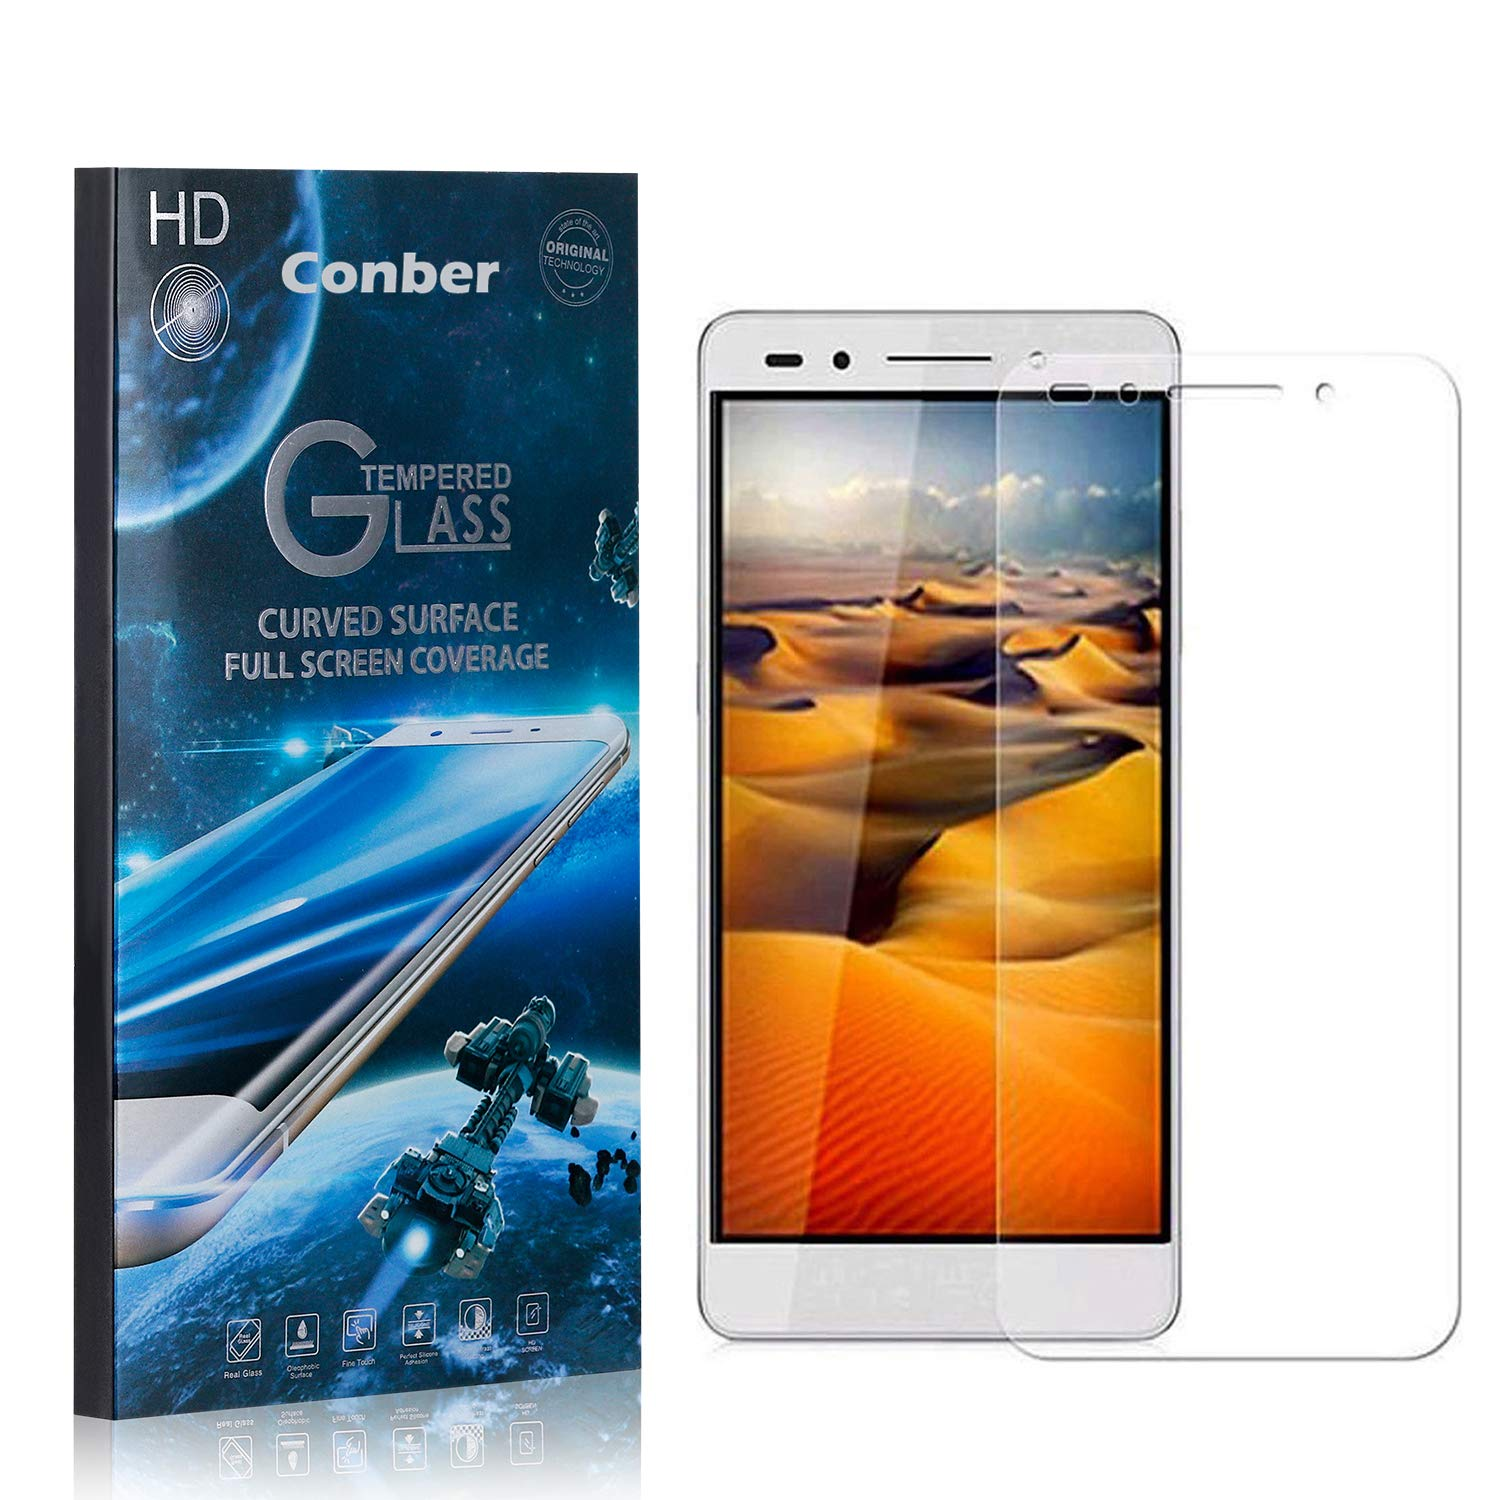 Conber 1 specialty shop Pack Screen Protector Outlet SALE Huawei Scratch-Re 7 for Honor